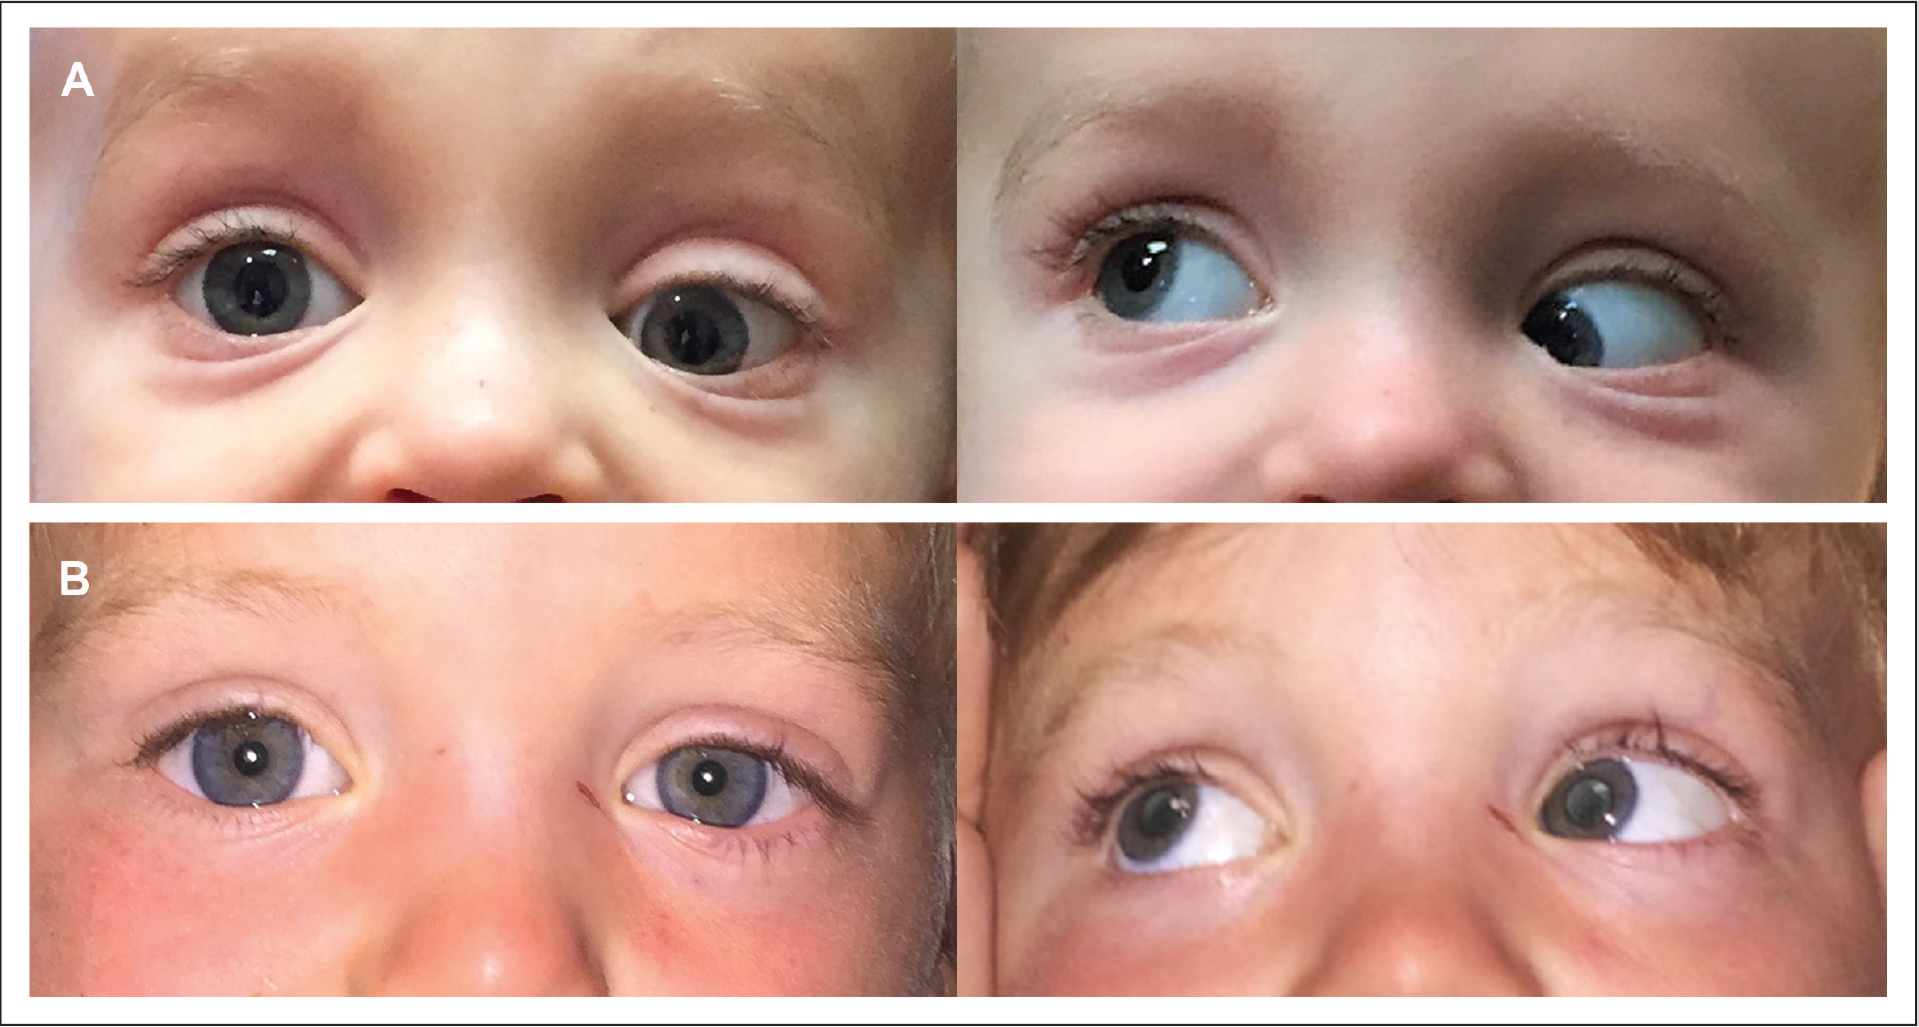 (A) The patient presented with a significant left eye hypotropia and elevation deficiency on adduction. (B) Excellent improvement in alignment was achieved with left superior oblique tendon lengthening, shown here 1 week after surgery.